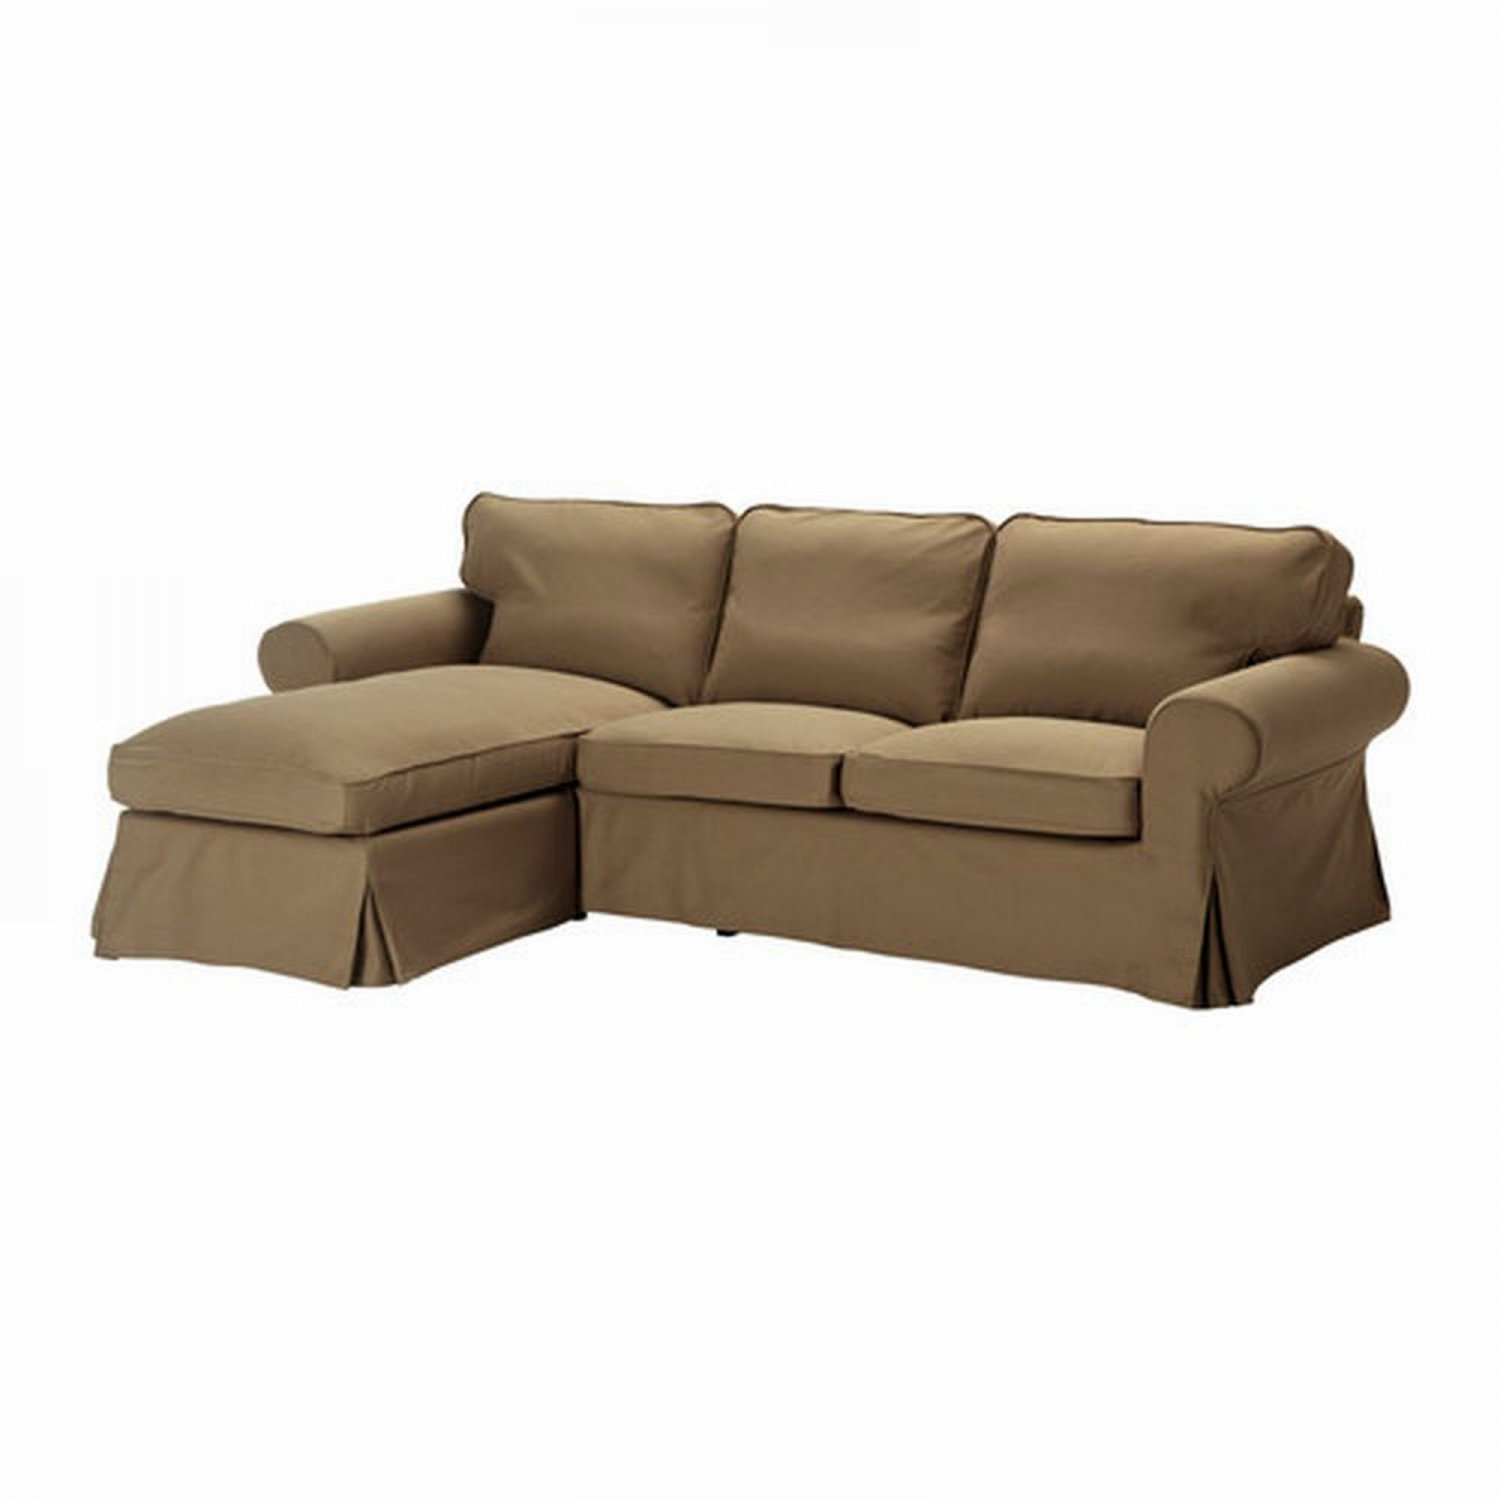 Ikea ektorp 2 seat loveseat sofa with chaise cover slipcover idemo light brown Loveseat slip cover